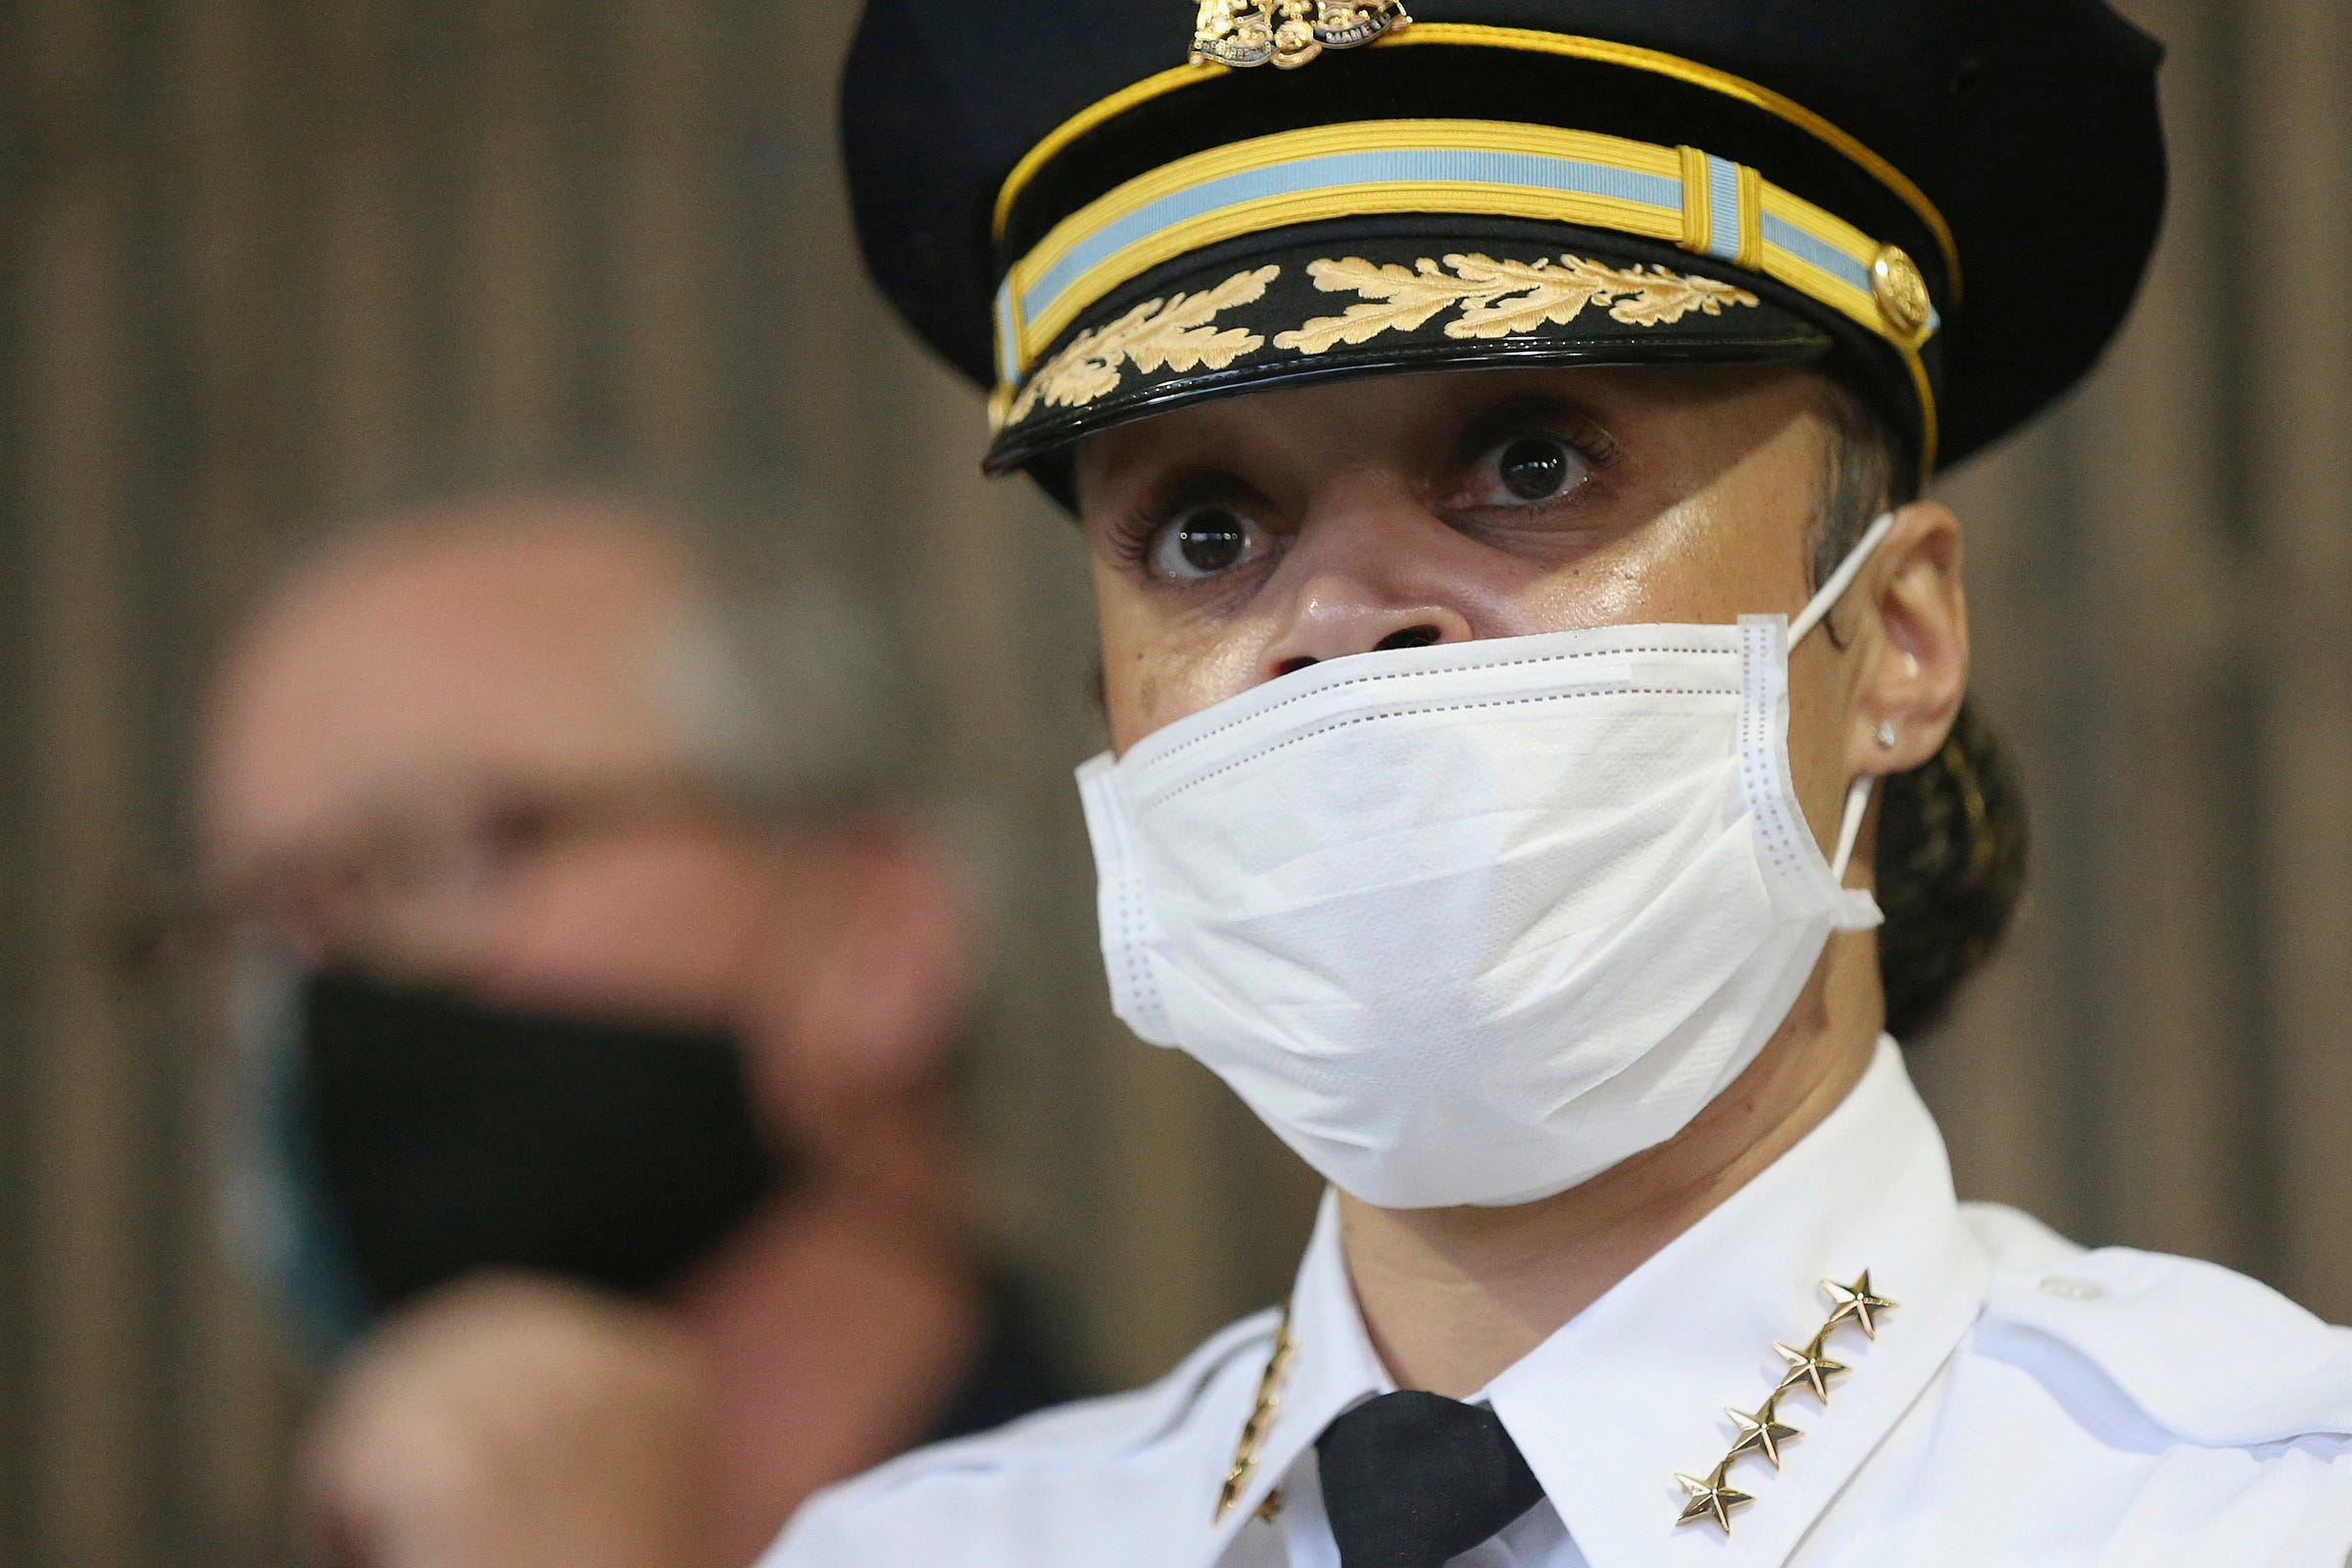 Danielle Outlaw is commissioner of the Philadelphia Police Department, which is among the whitest urban departments in the nation compared to the population it serves. Currently 57% of the 6,500 officers in the department are white, while the city population is 44% Black and 15% Hispanic.